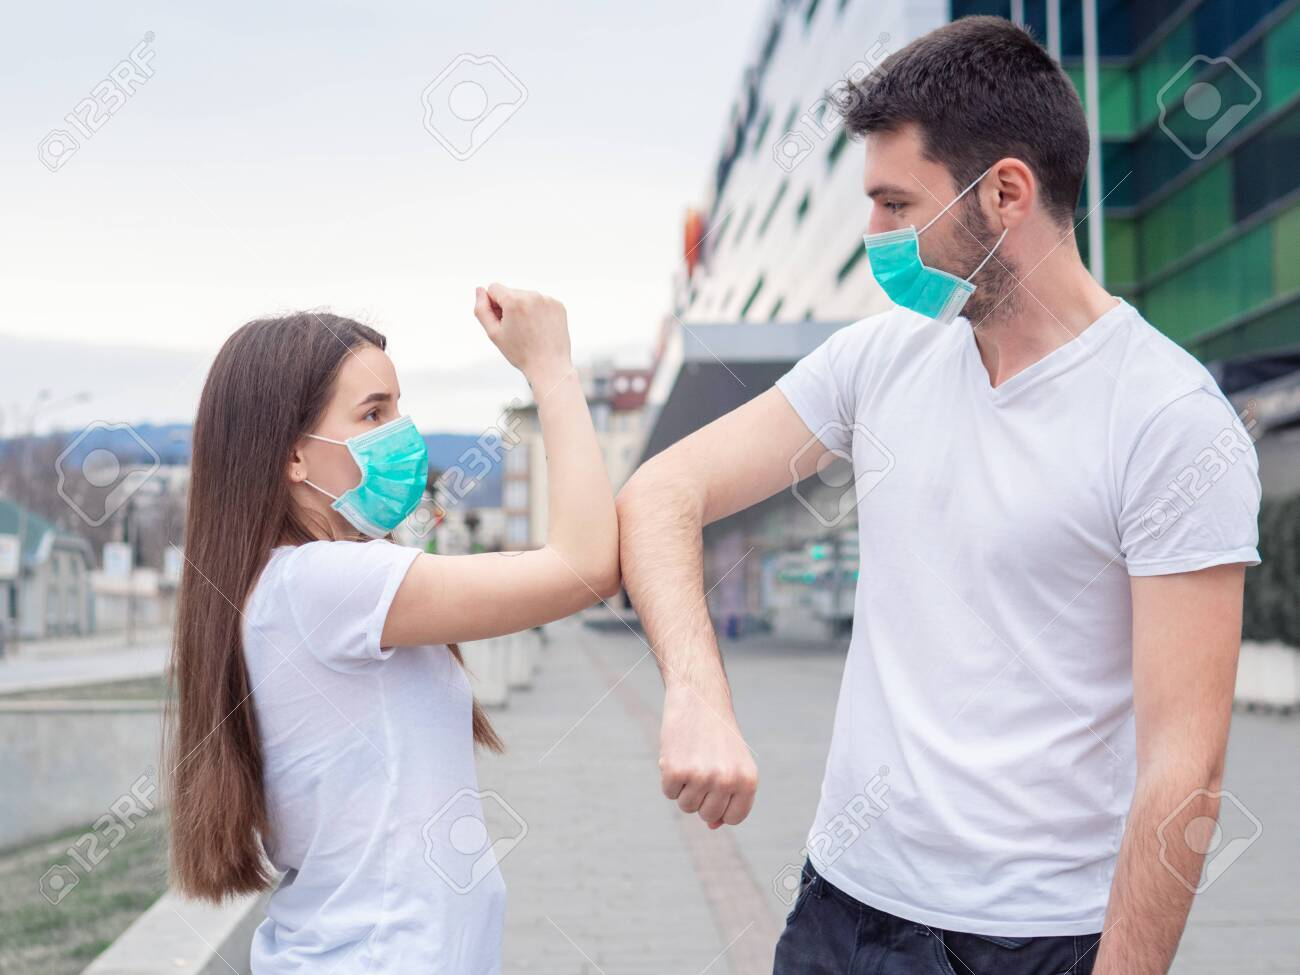 Two people woman and man wearing medical mask, friends greet each other with their elbows, instead of shaking hands. Elbow bump. A new greeting way to avoid the spread of coronavirus. - 143409686